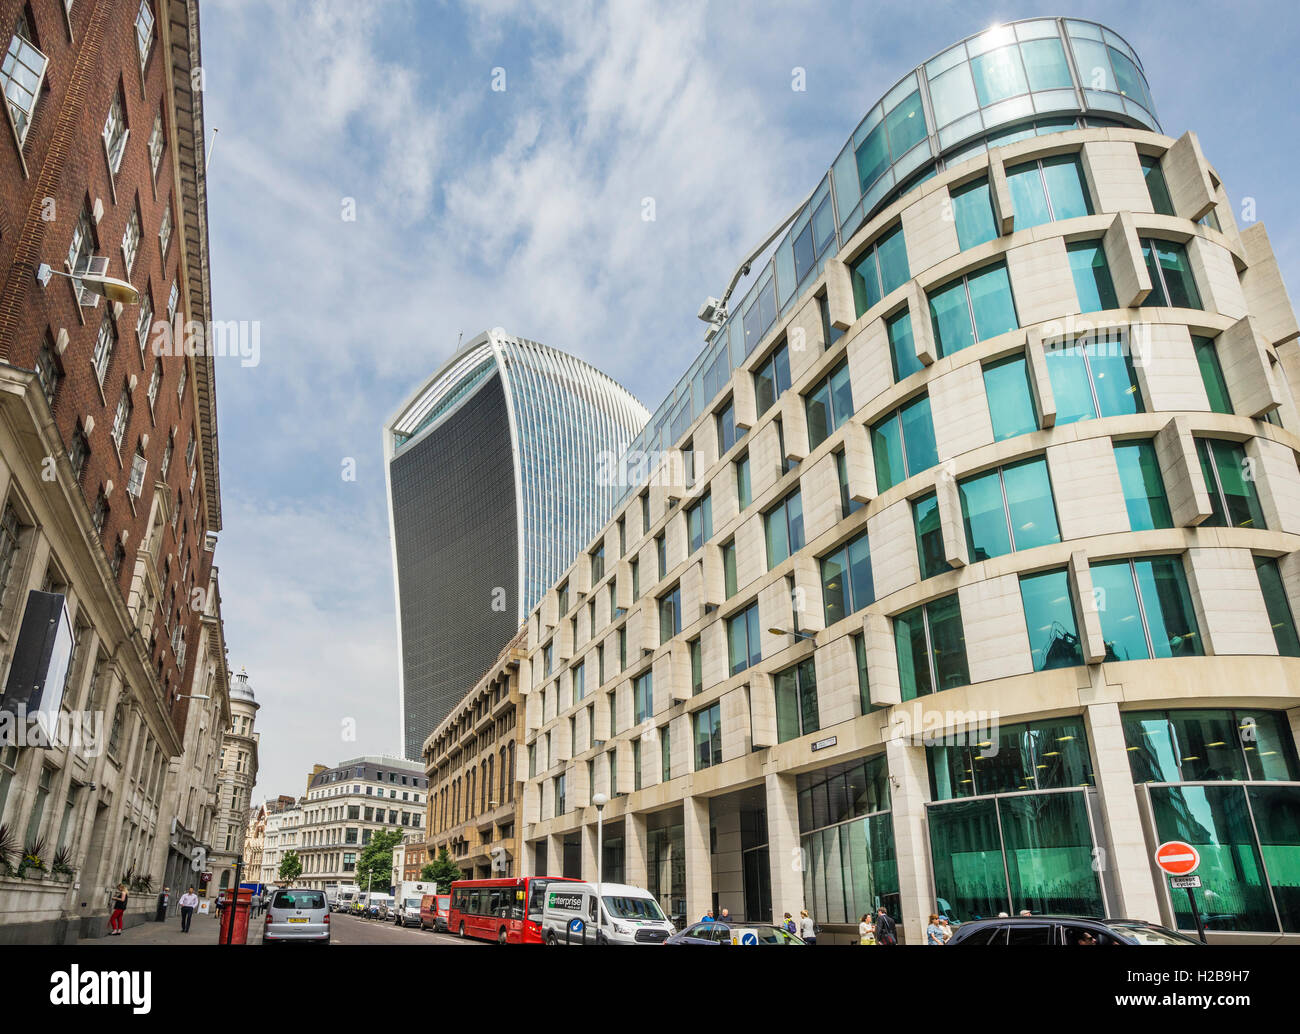 Great Brtain, England, City of London, view of Plantation Place South building with the 20 Fenchurch St 'Walkie - Stock Image